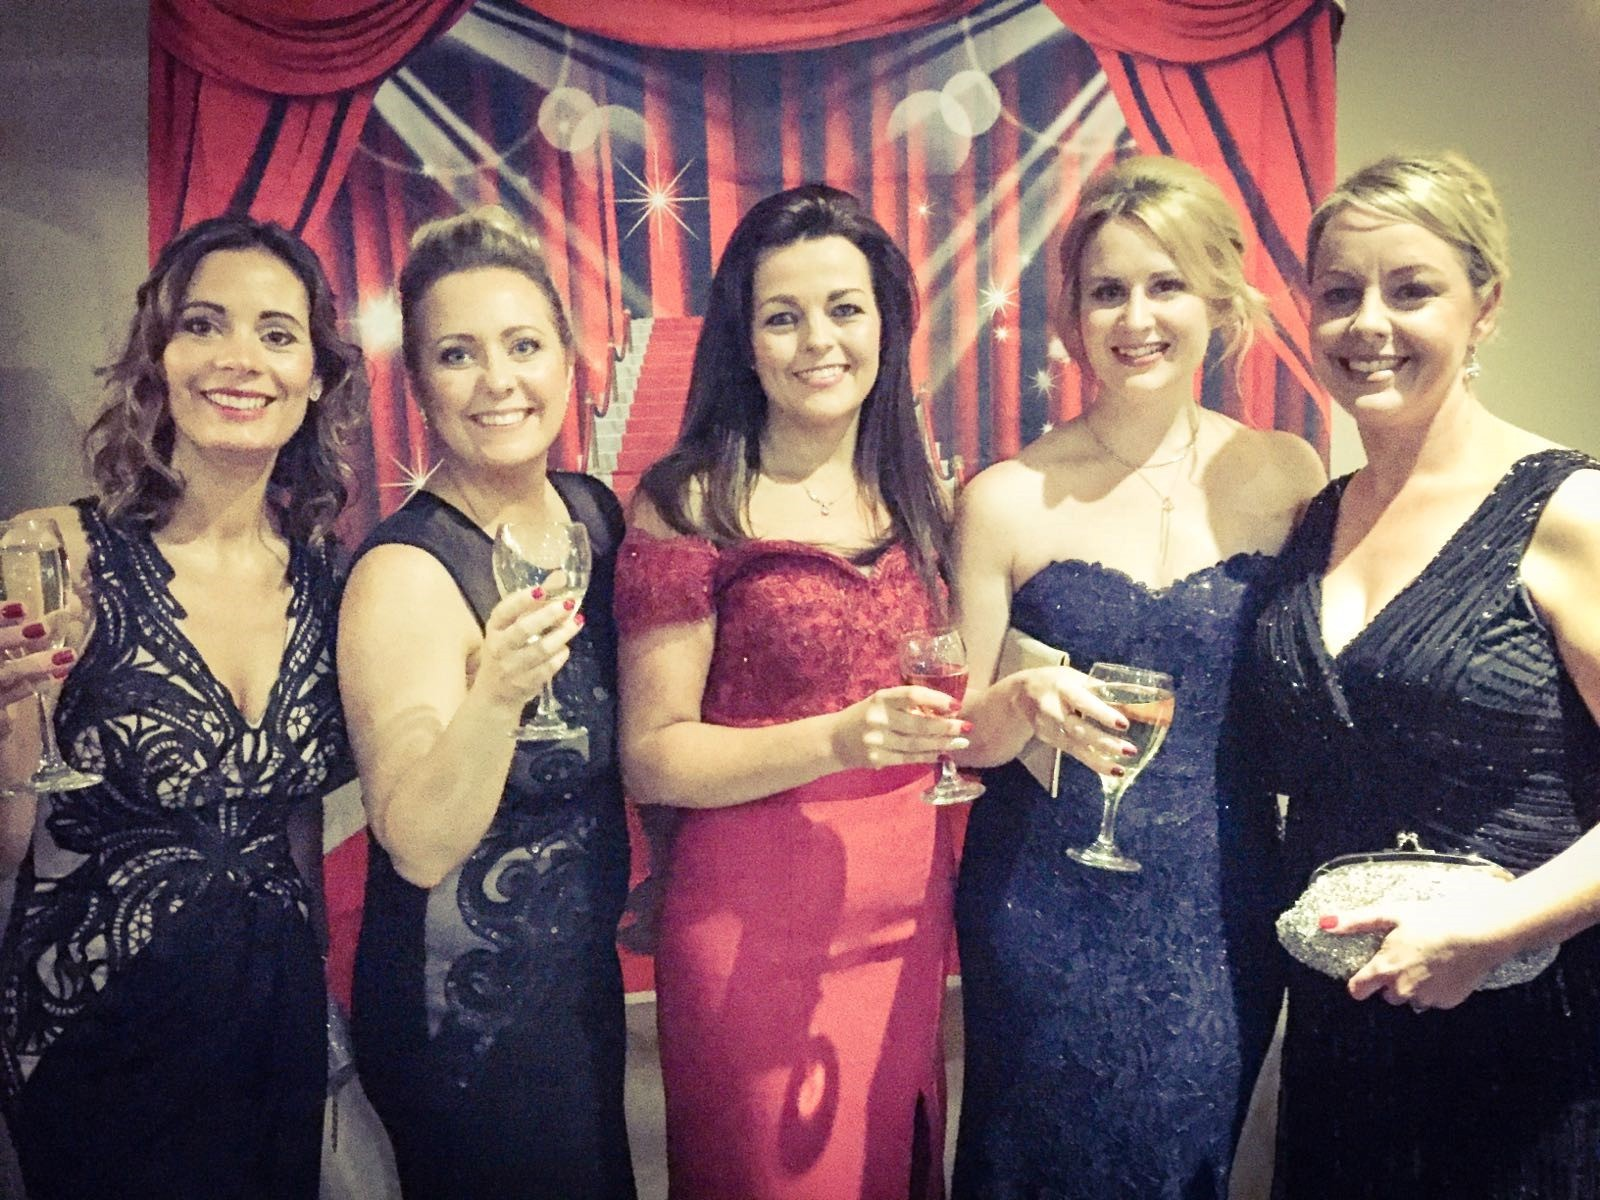 Oldswinford CofE Primary School's annual PTA Autumn Ball raised £3,000 towards school funds